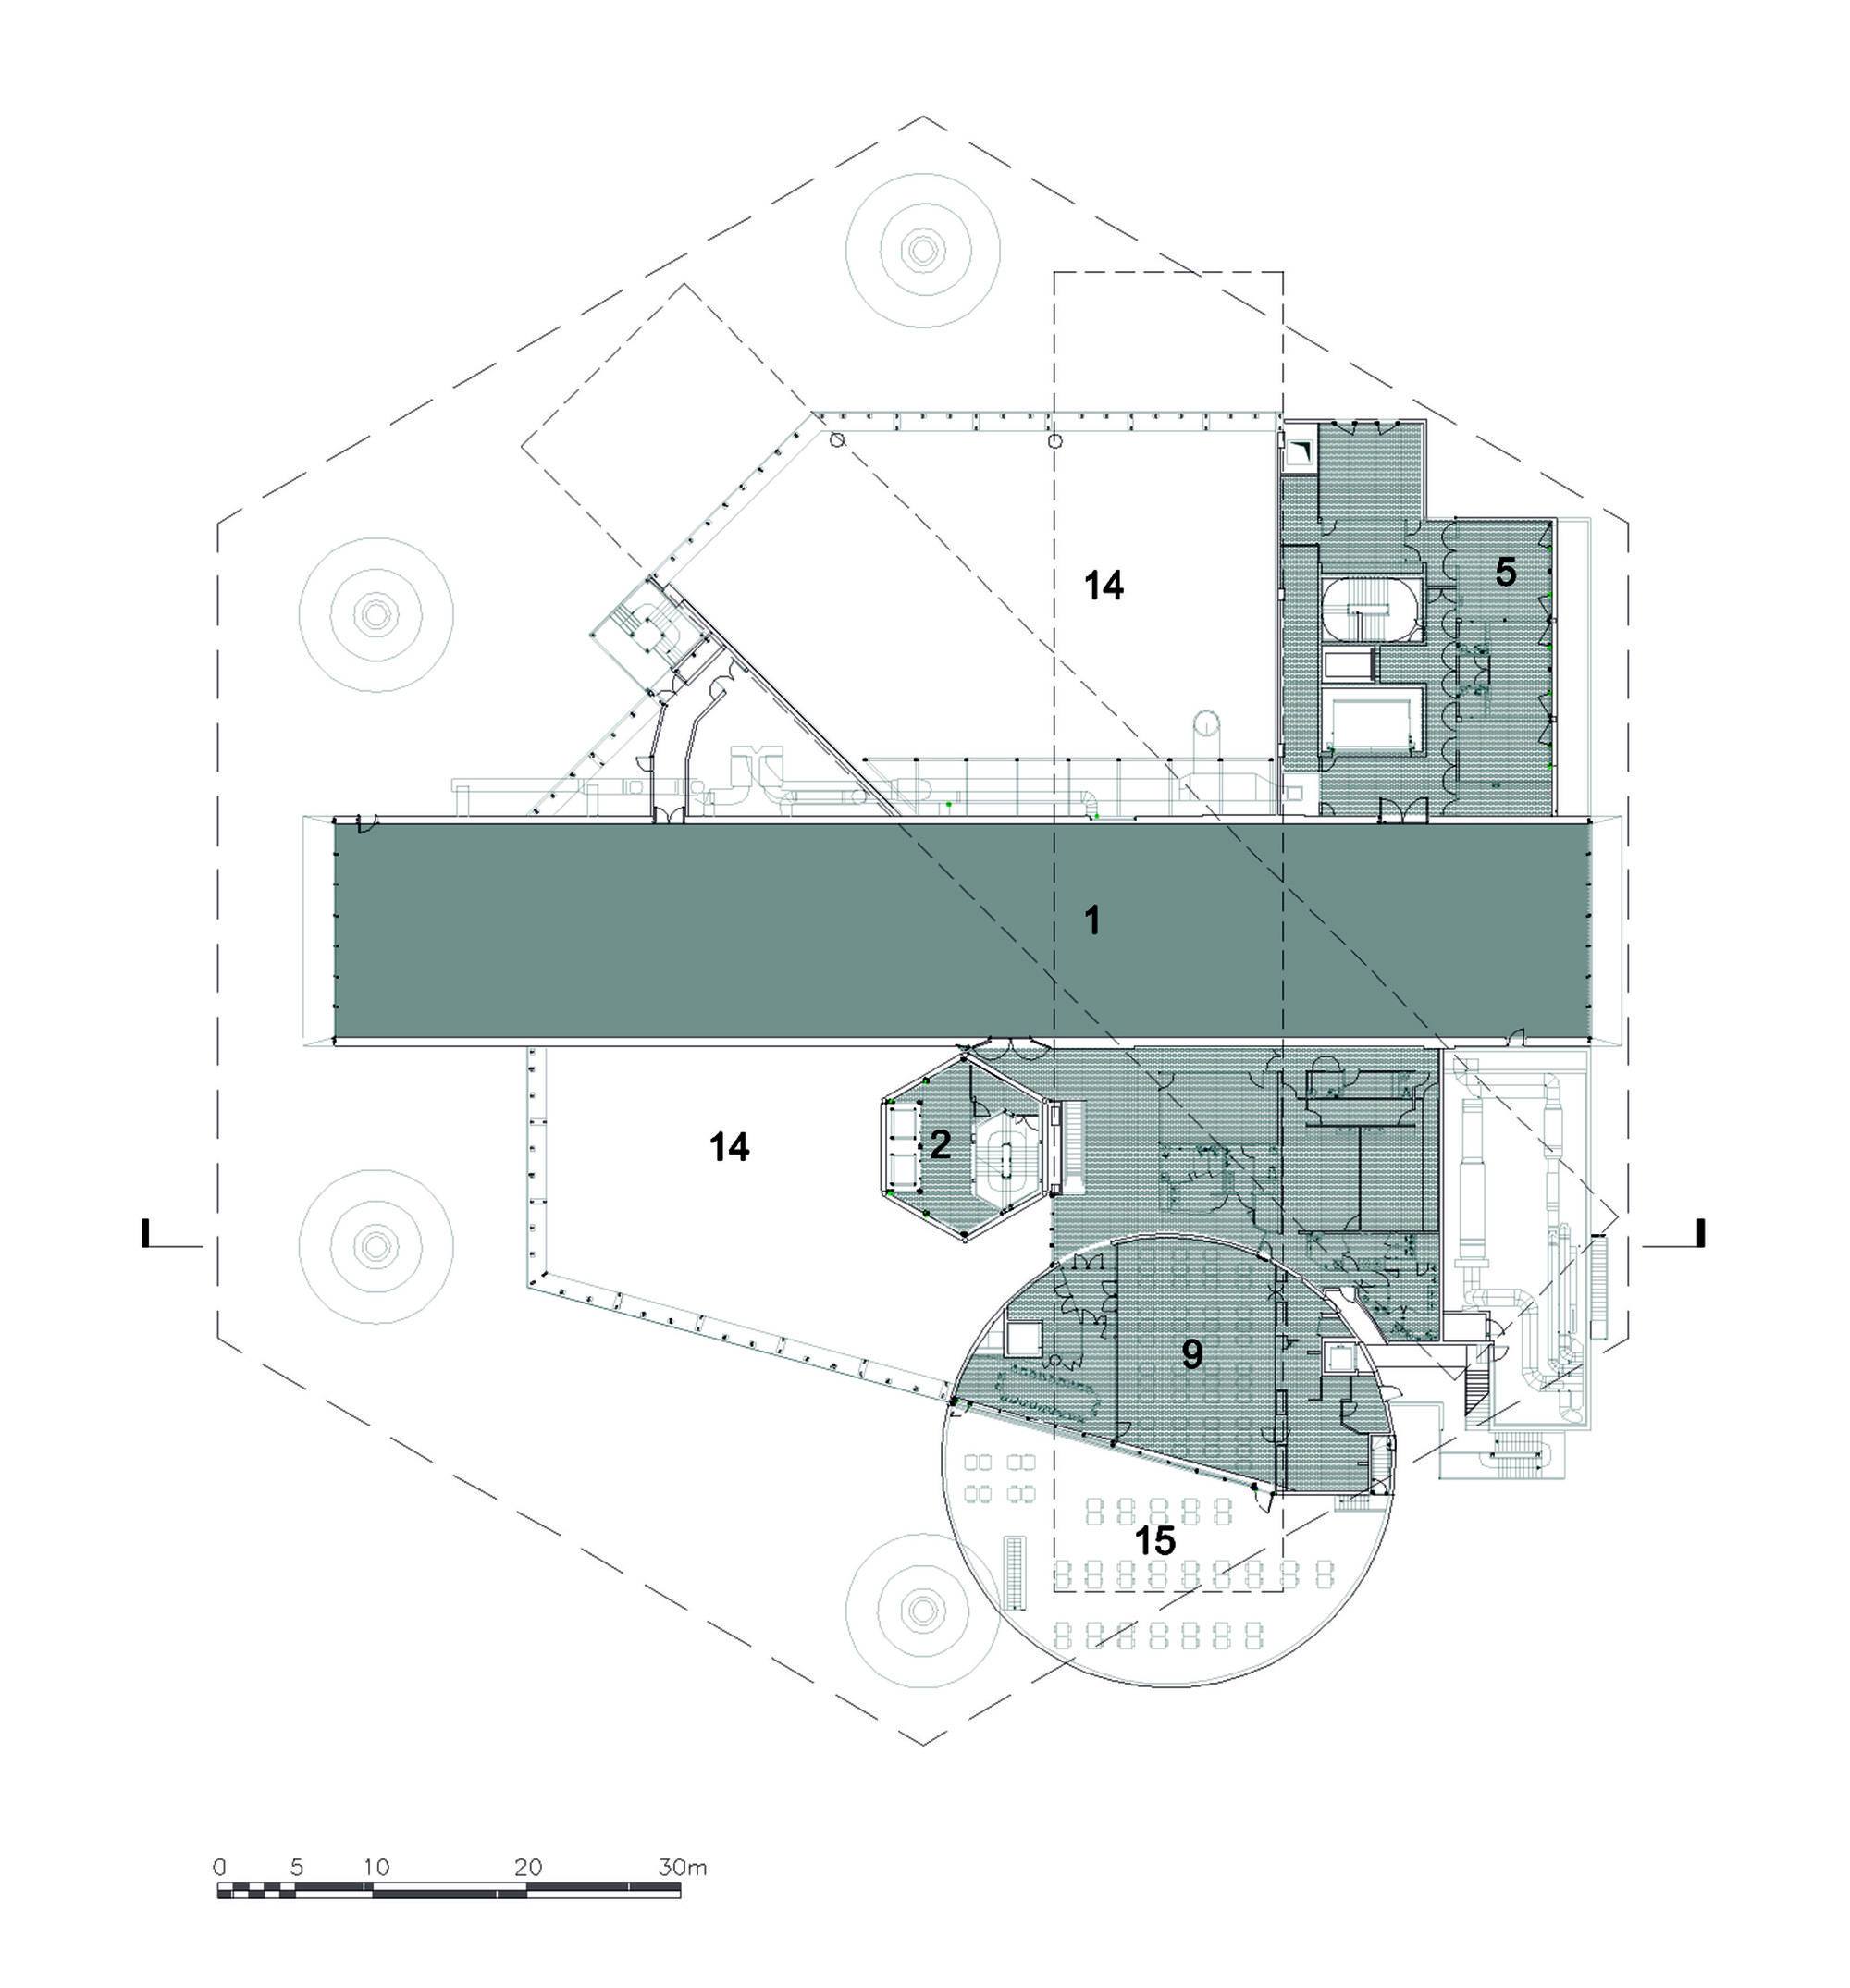 Dormer Sheds moreover Best Garage Apartment Plans besides Thoracic Dorsal Spine likewise Centre Pompidou Metz Shigeru Ban Architects likewise F25spec. on first floor extension 1